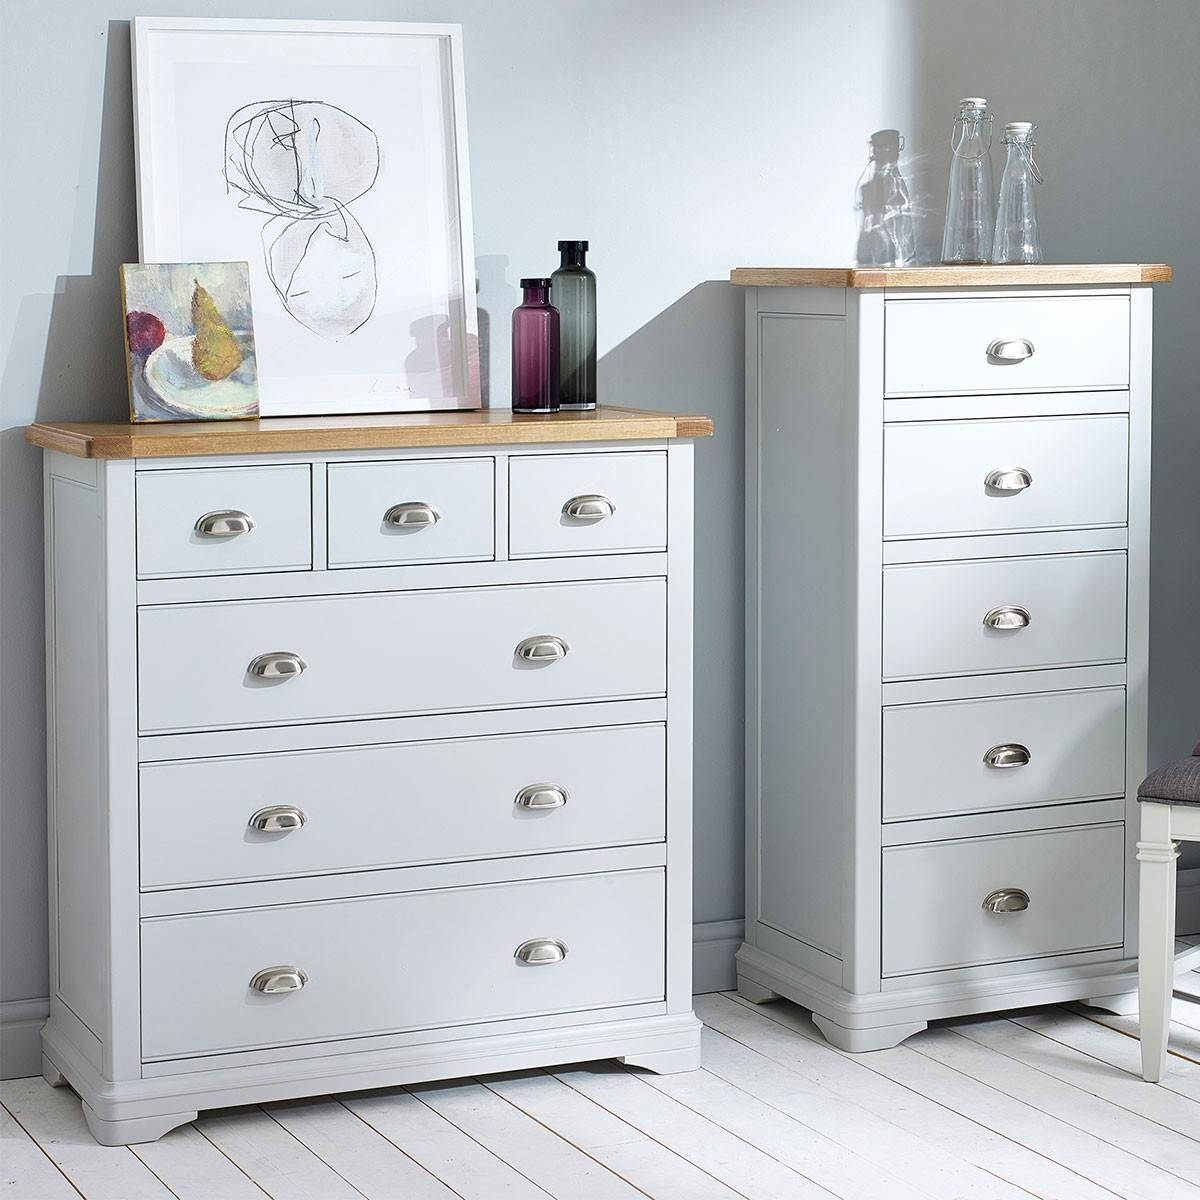 Hutch® - Harbury Light Grey Painted Double Wardrobe With Drawers intended for Grey Painted Wardrobes (Image 7 of 15)